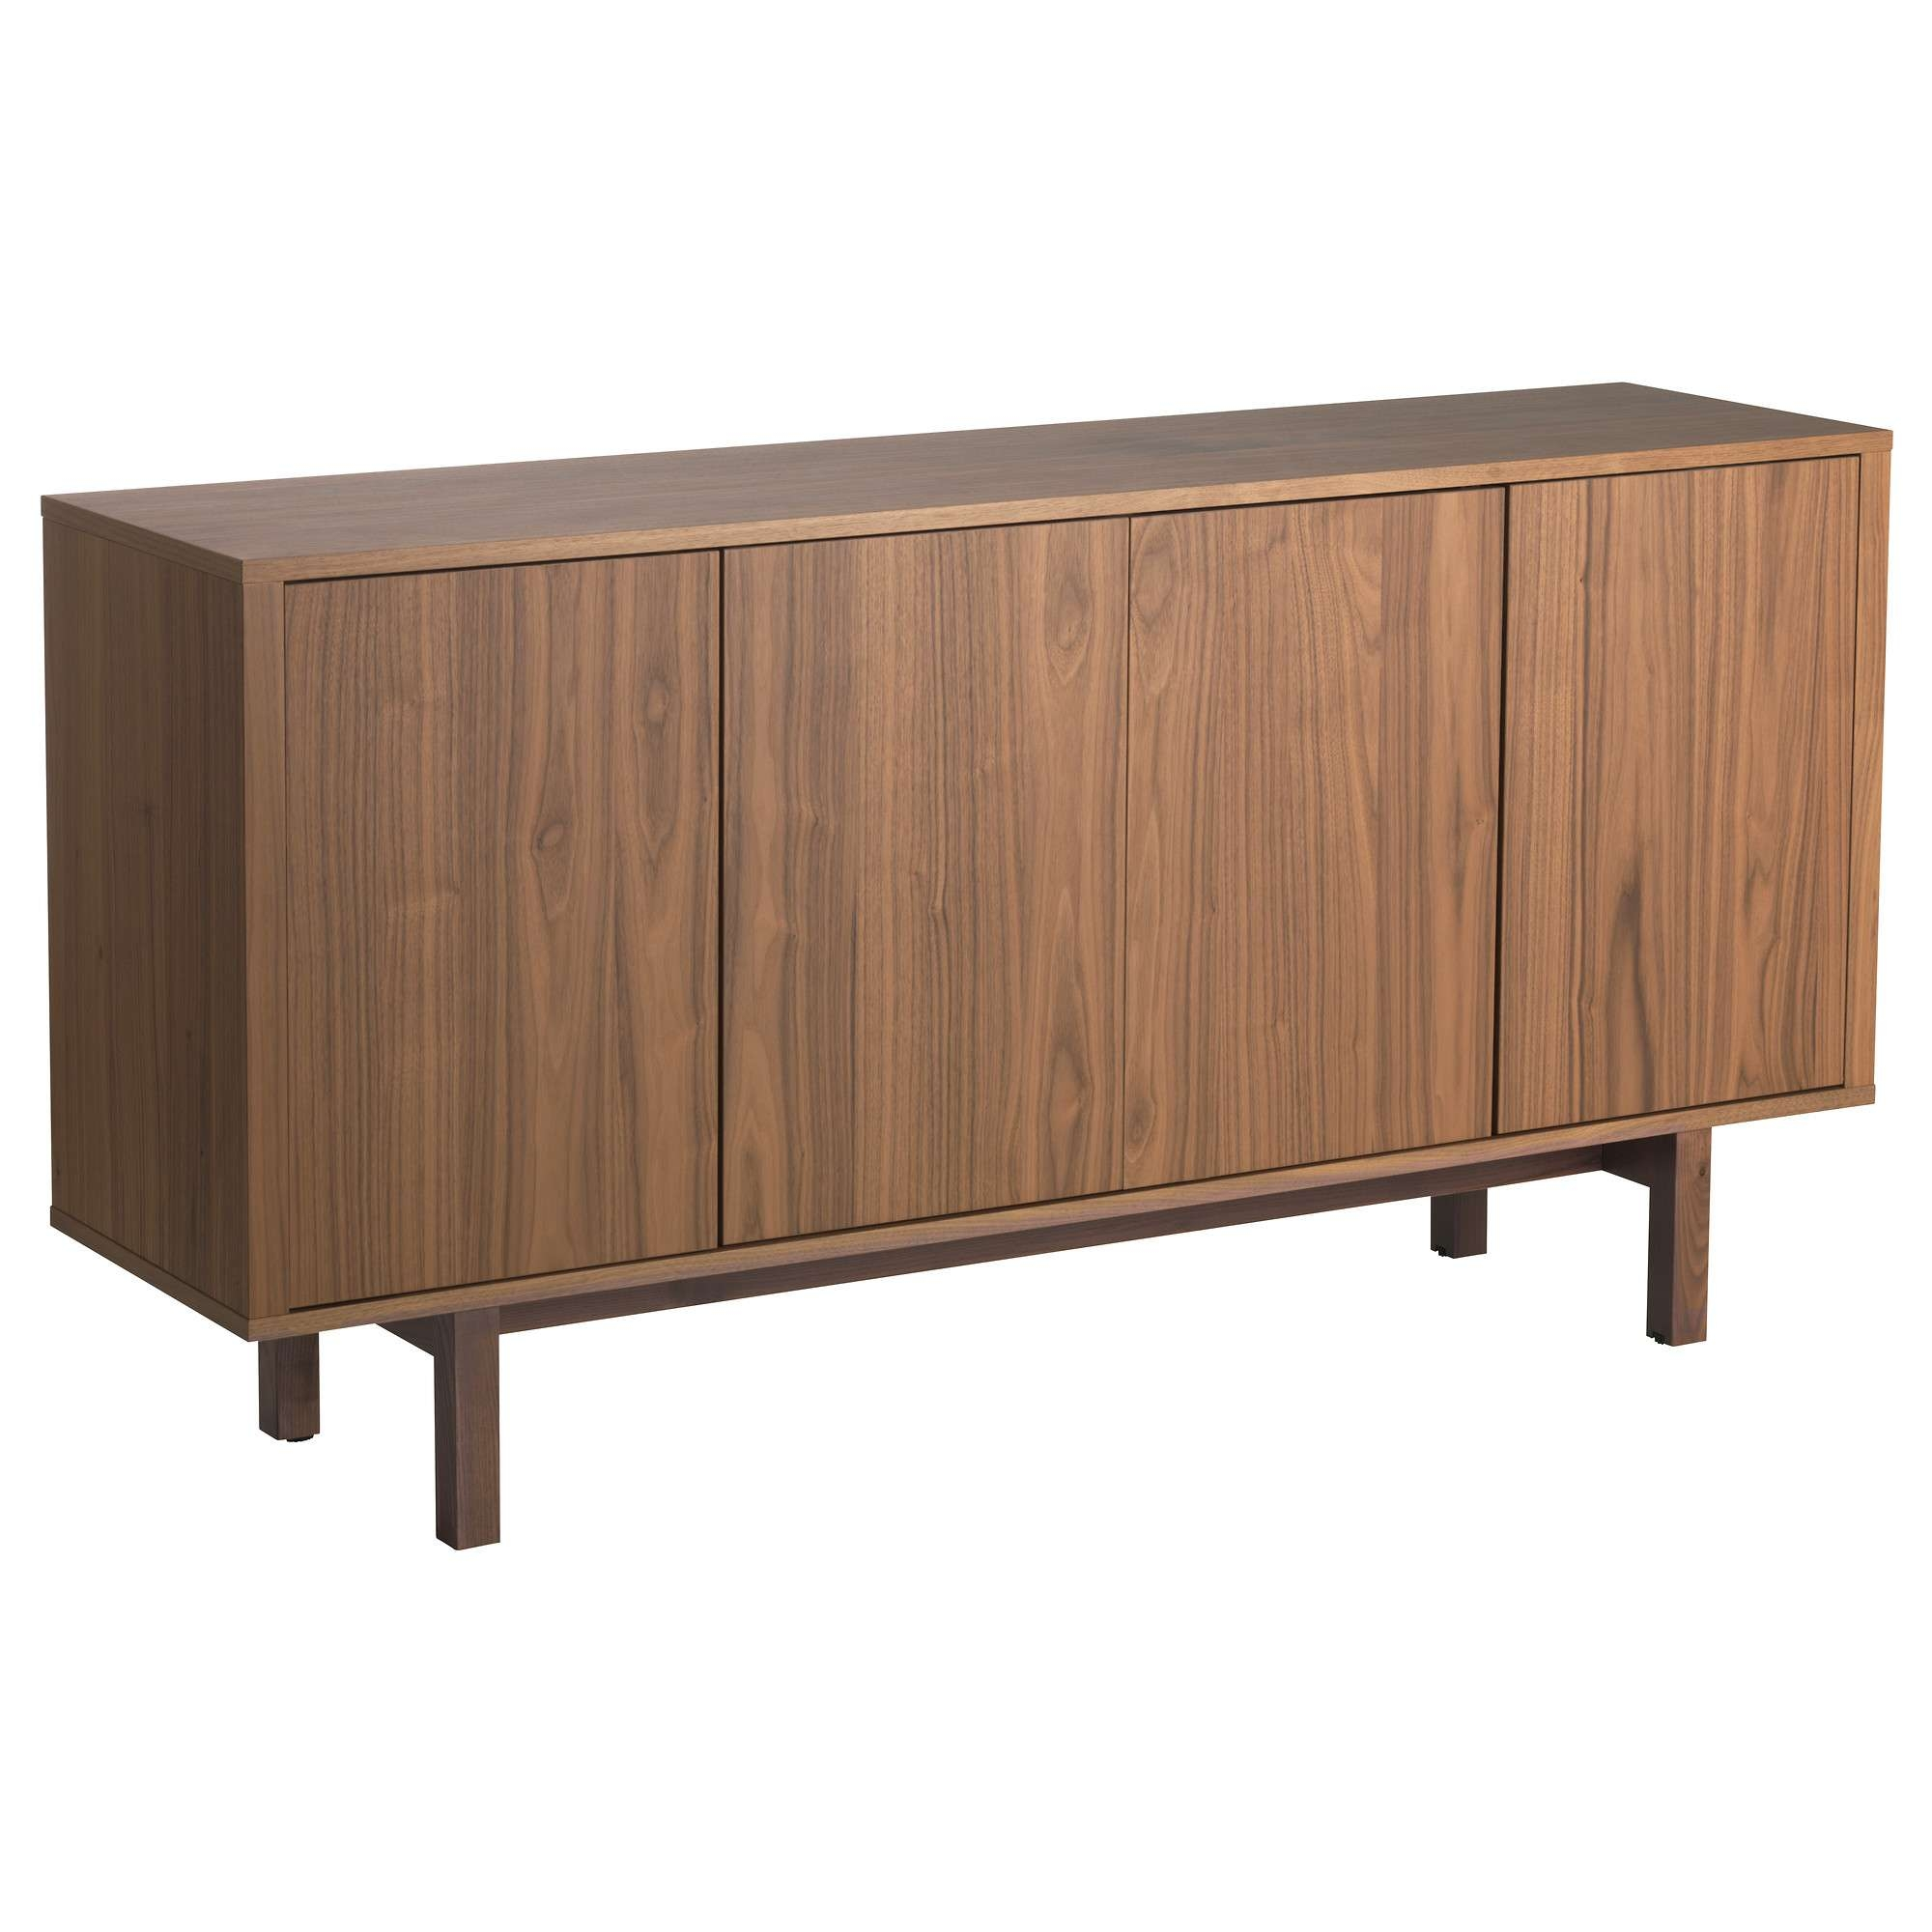 Stockholm Sideboard – Ikea Regarding Ikea Sideboards (View 2 of 20)